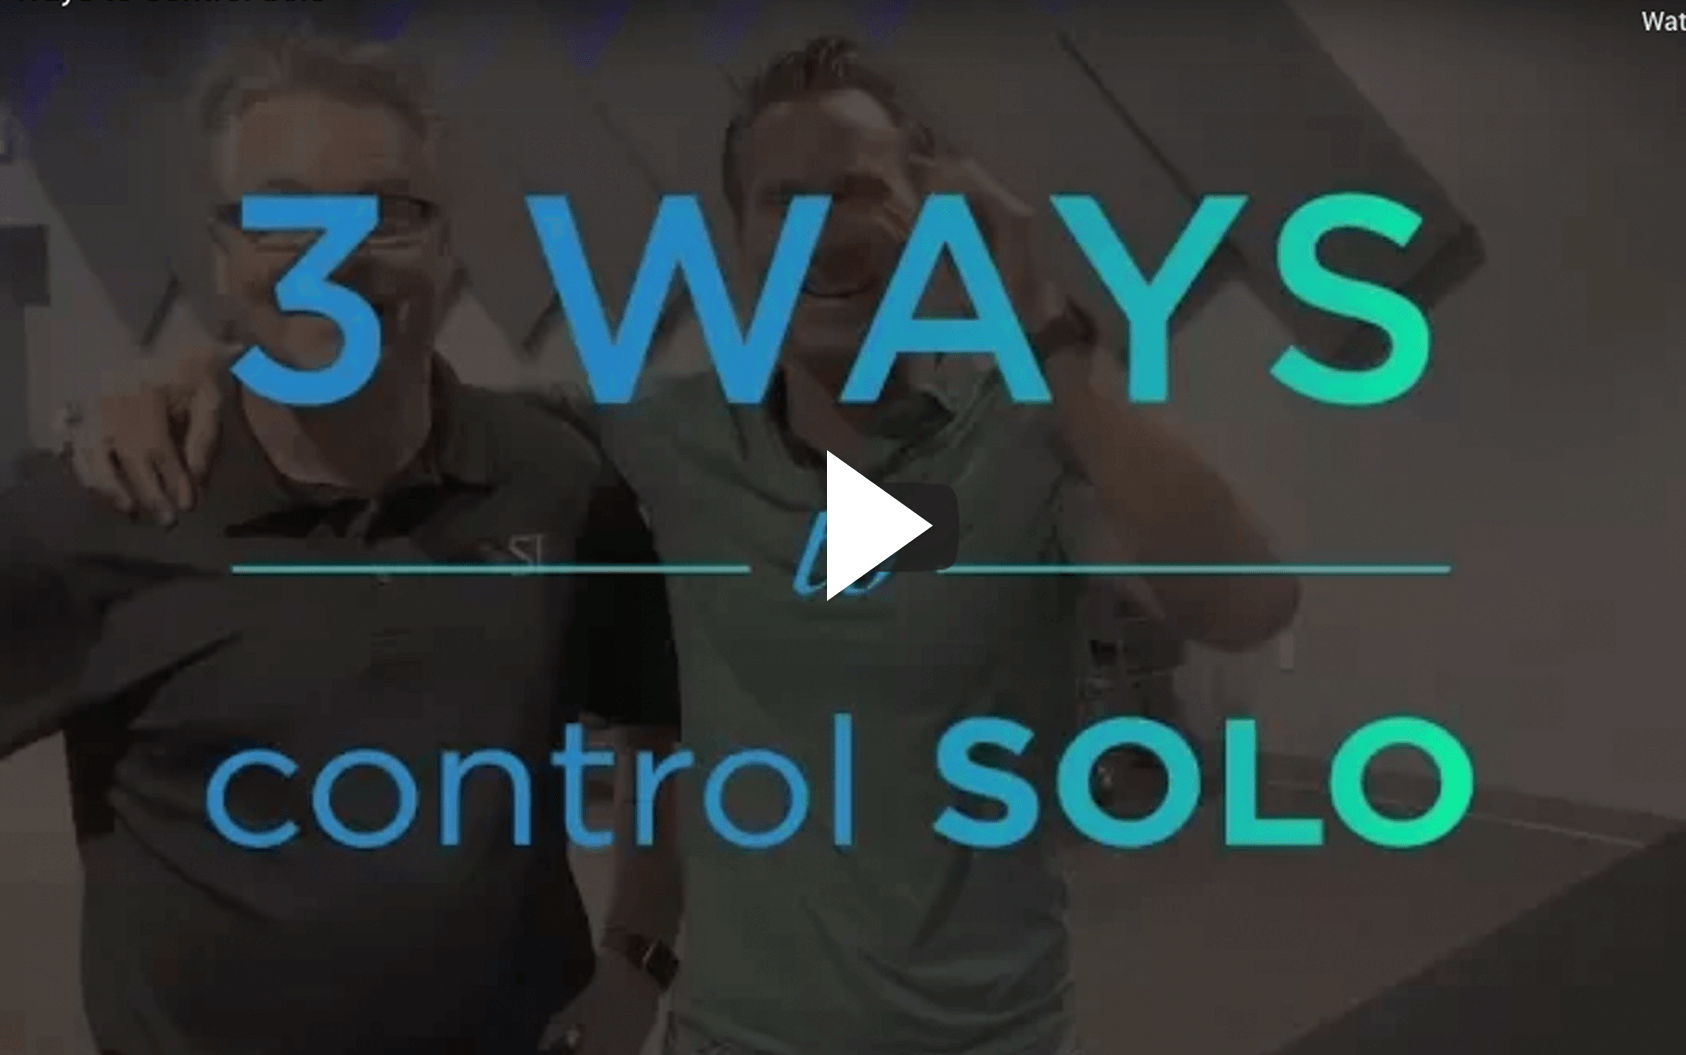 3 Ways to Control Solo